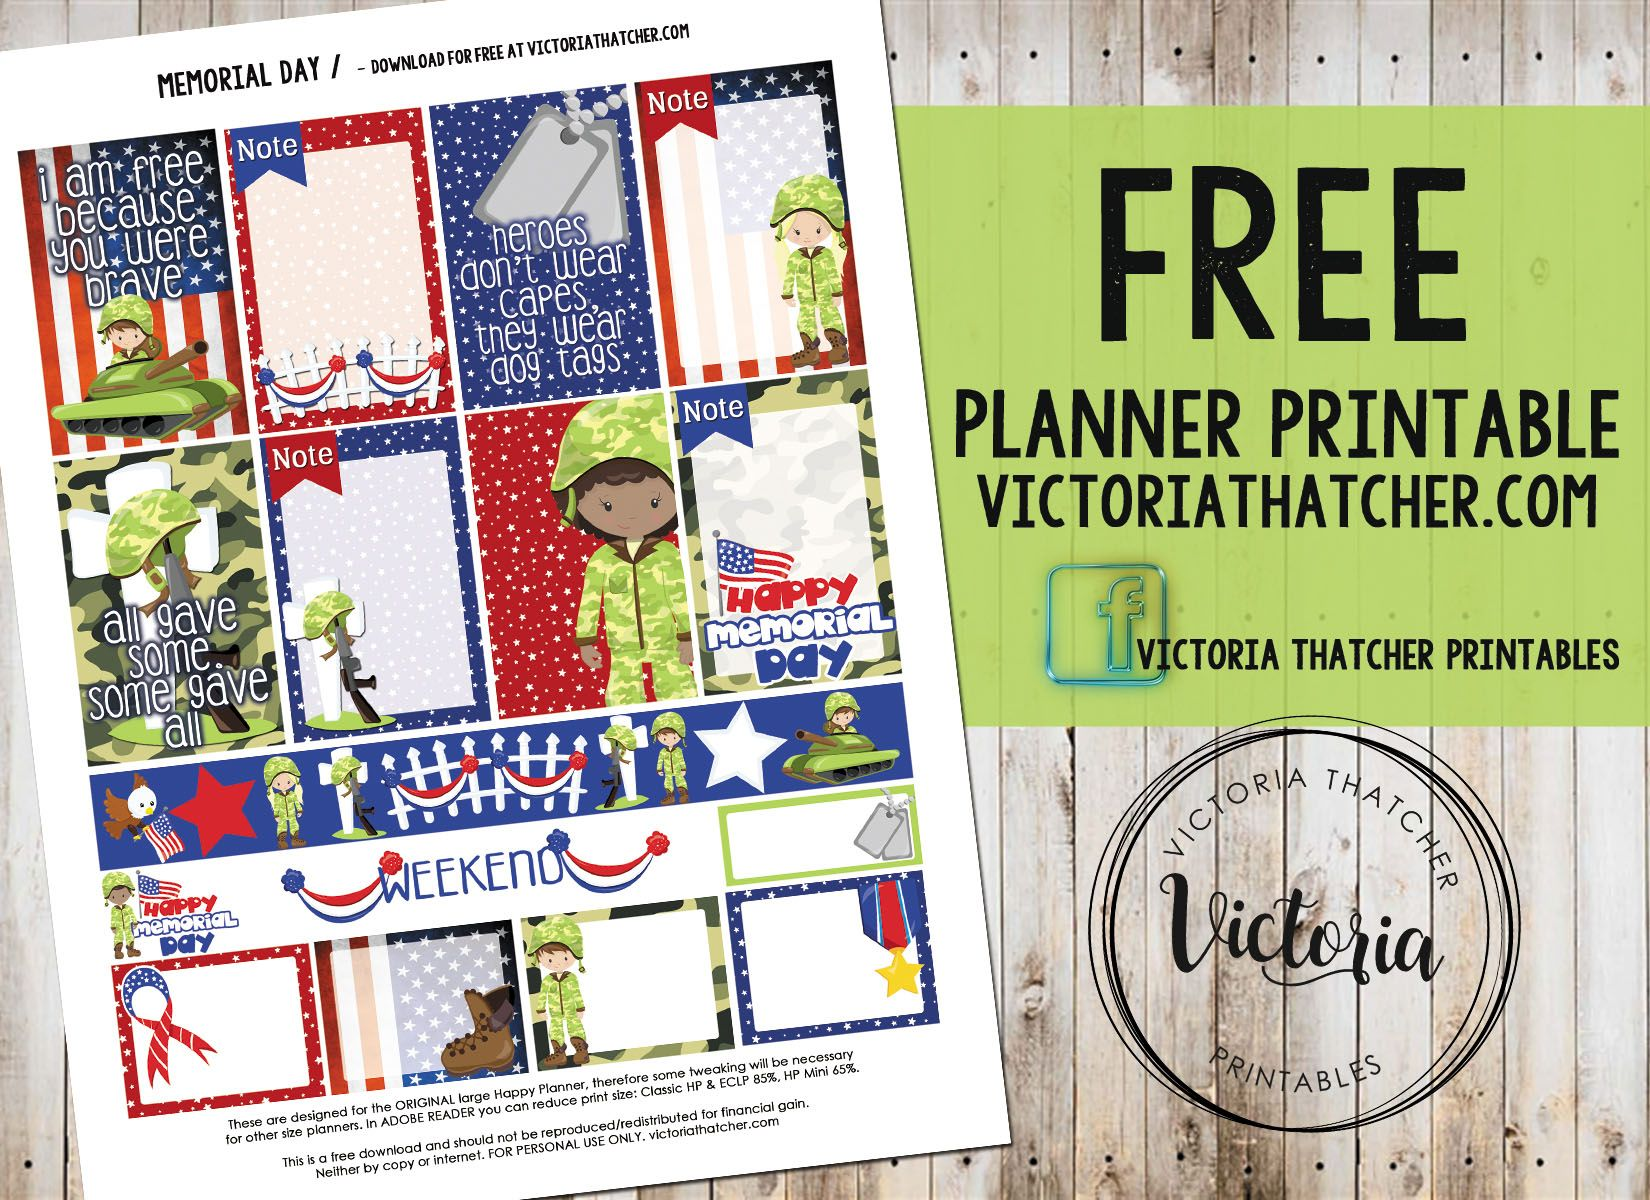 Memorial Day Planner Printable Free Victoria Thatcher